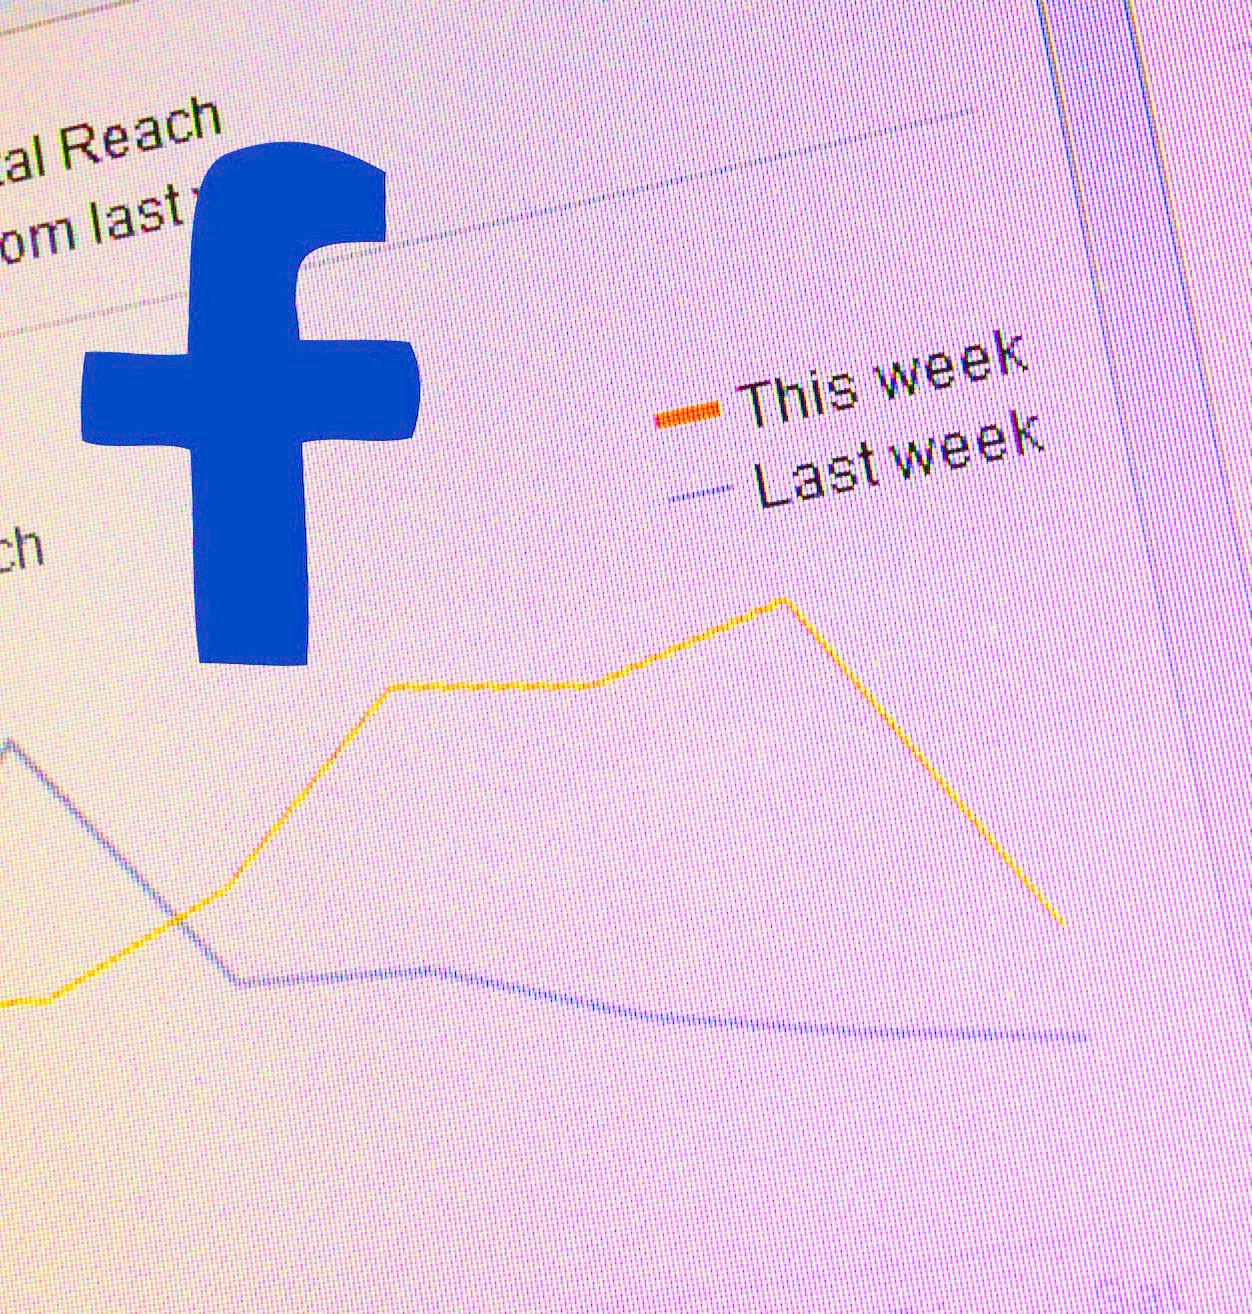 Facebook Fan Reach Decrease